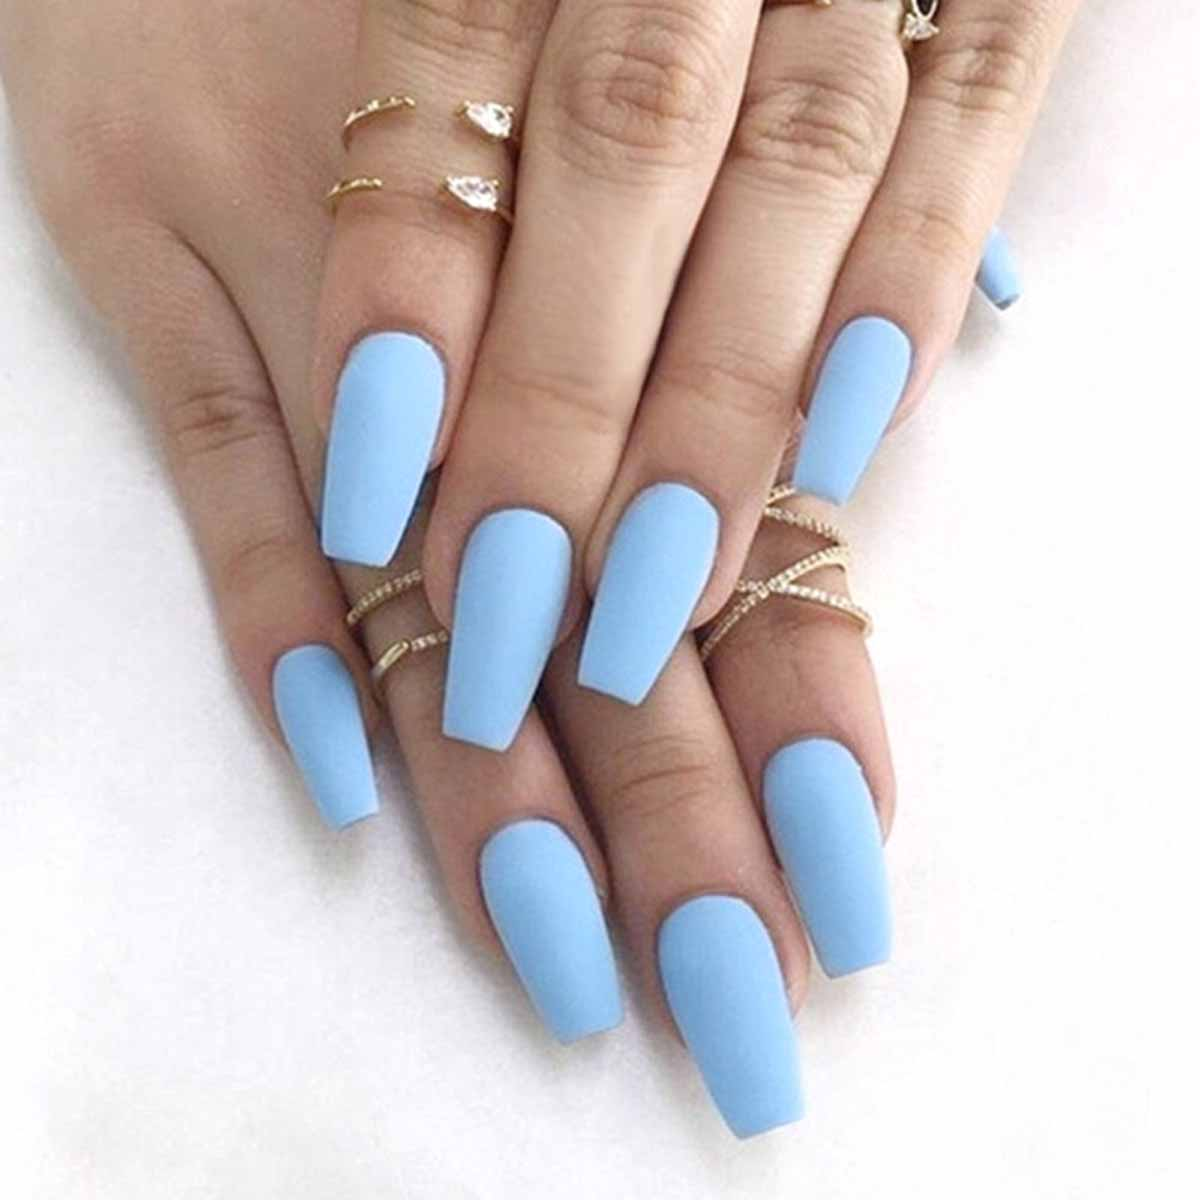 24Pcs Blue Color Matte Fake Press On Nails Europe And The United Stated Beam Style Long Square Head Acrylic Fake Nail With Glue